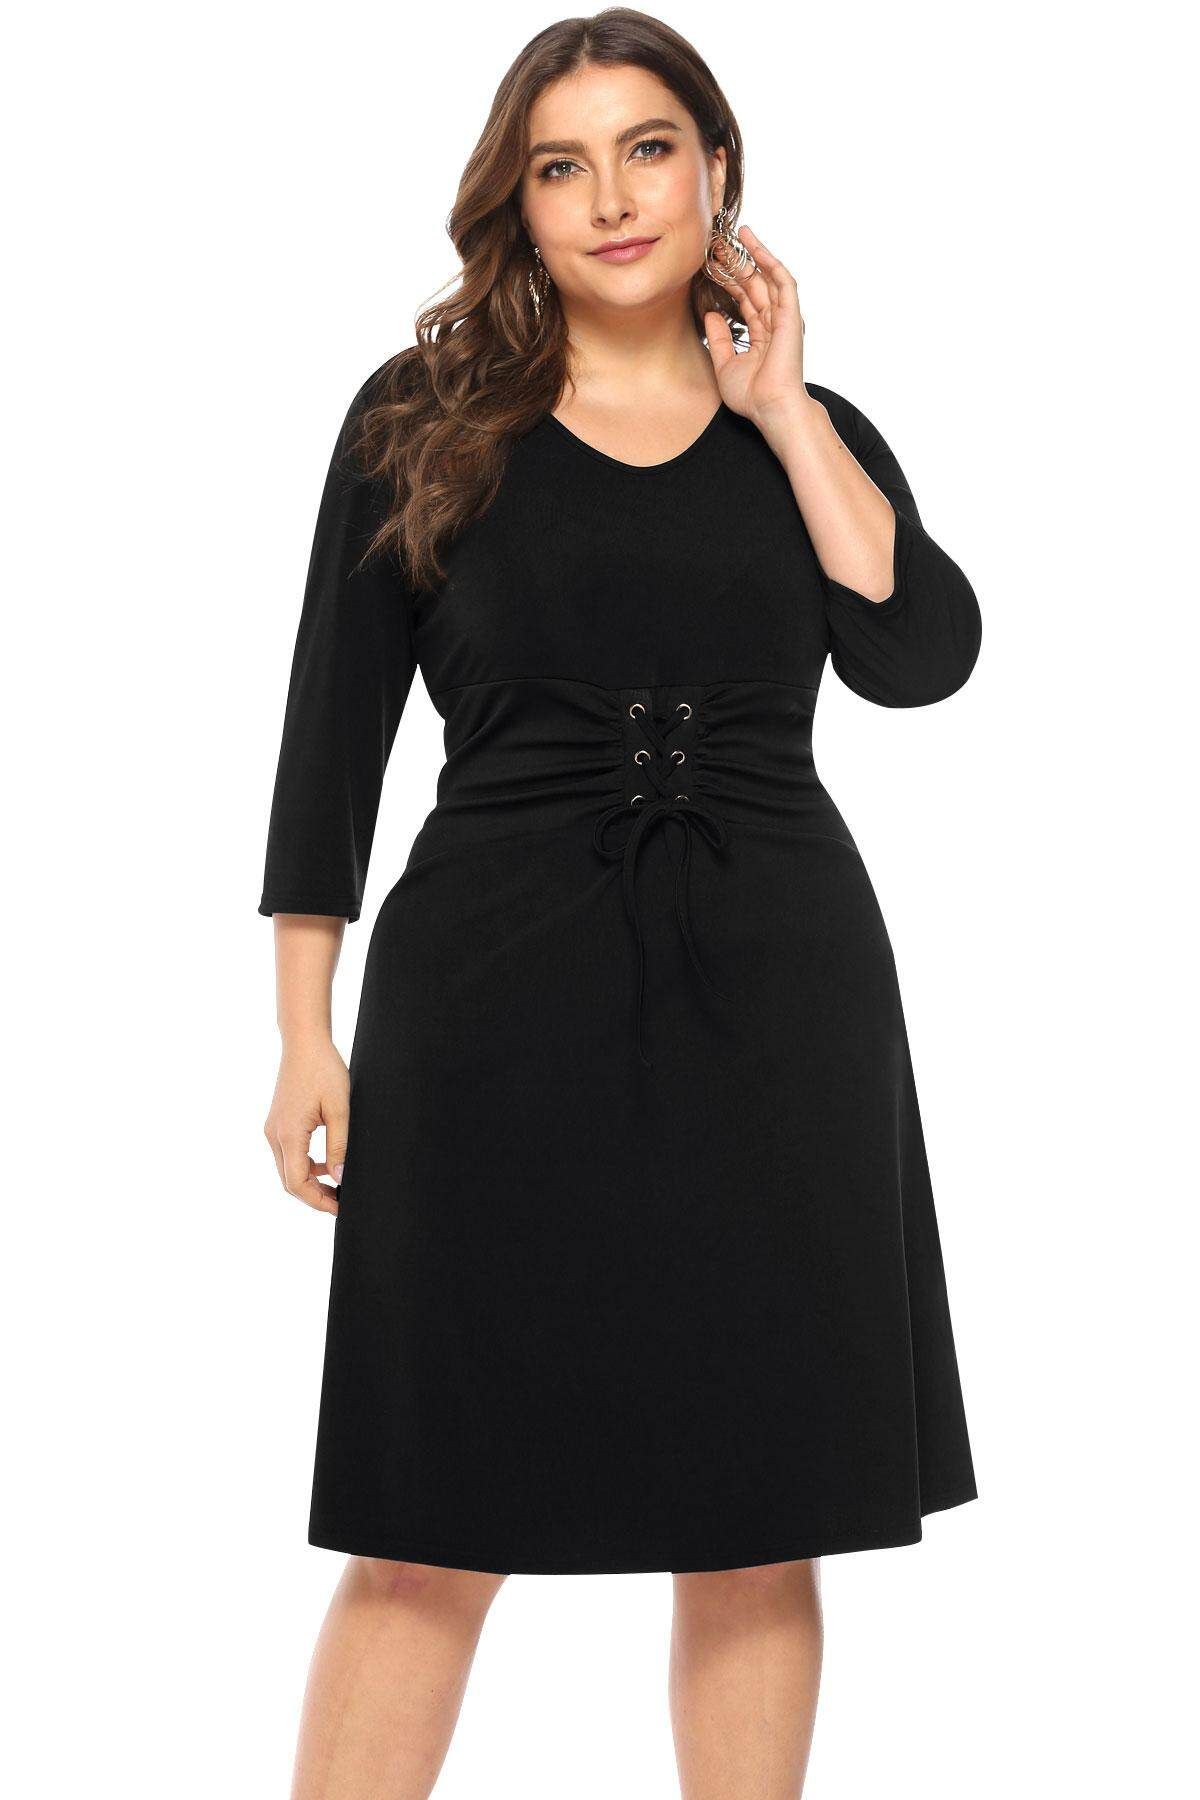 0c9b17293a71f  Buy 1 Item Shipping Free  Plus Size Dress Autumn Winter Women Plus Size  O-neck Lace-up Solid Color Casual Dress